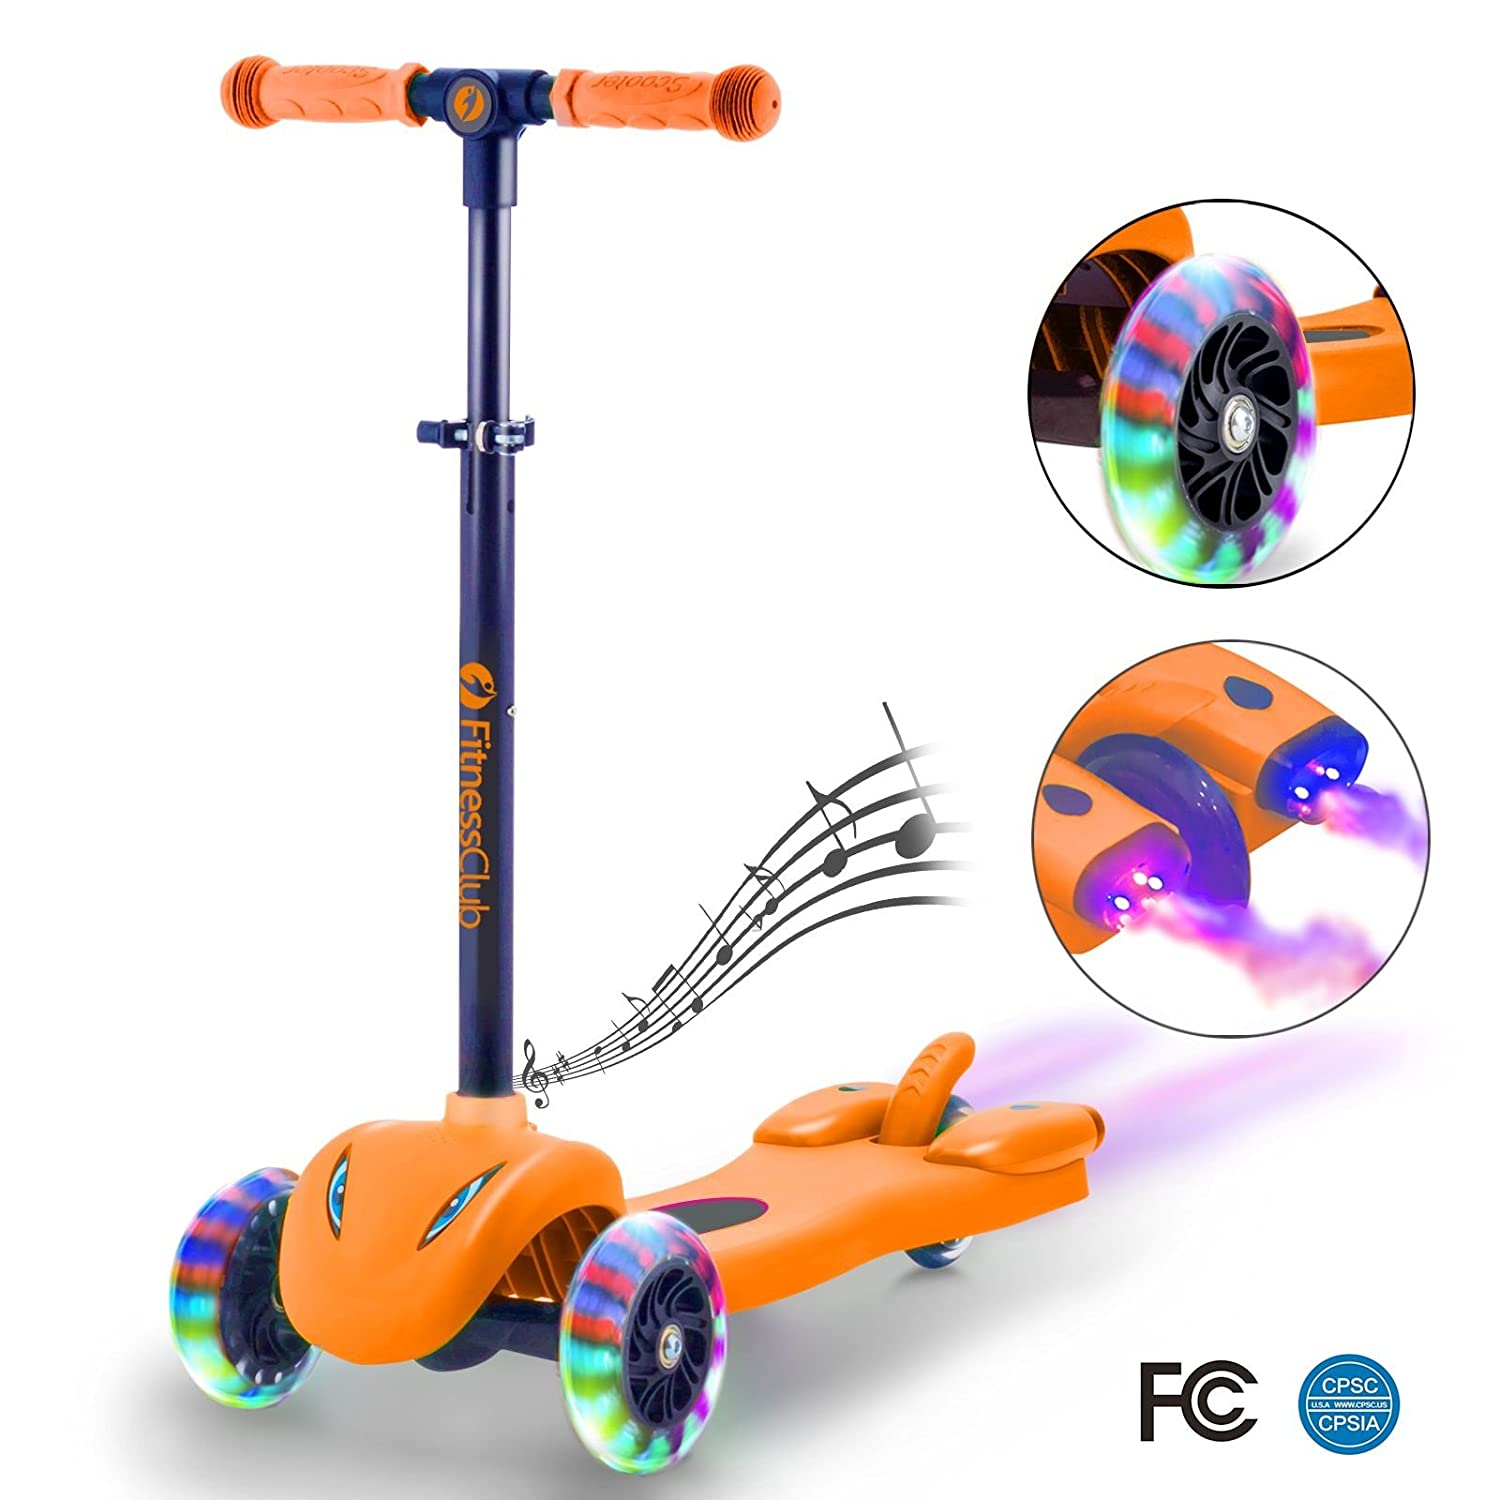 Kick Scooter for Kids, Multi foundation Kids Scooters with LED Light Up Wheels, Height adjustable scooter for children, Rocket Sprayer +Sound Effect,colorful Water Dynamic steam mist